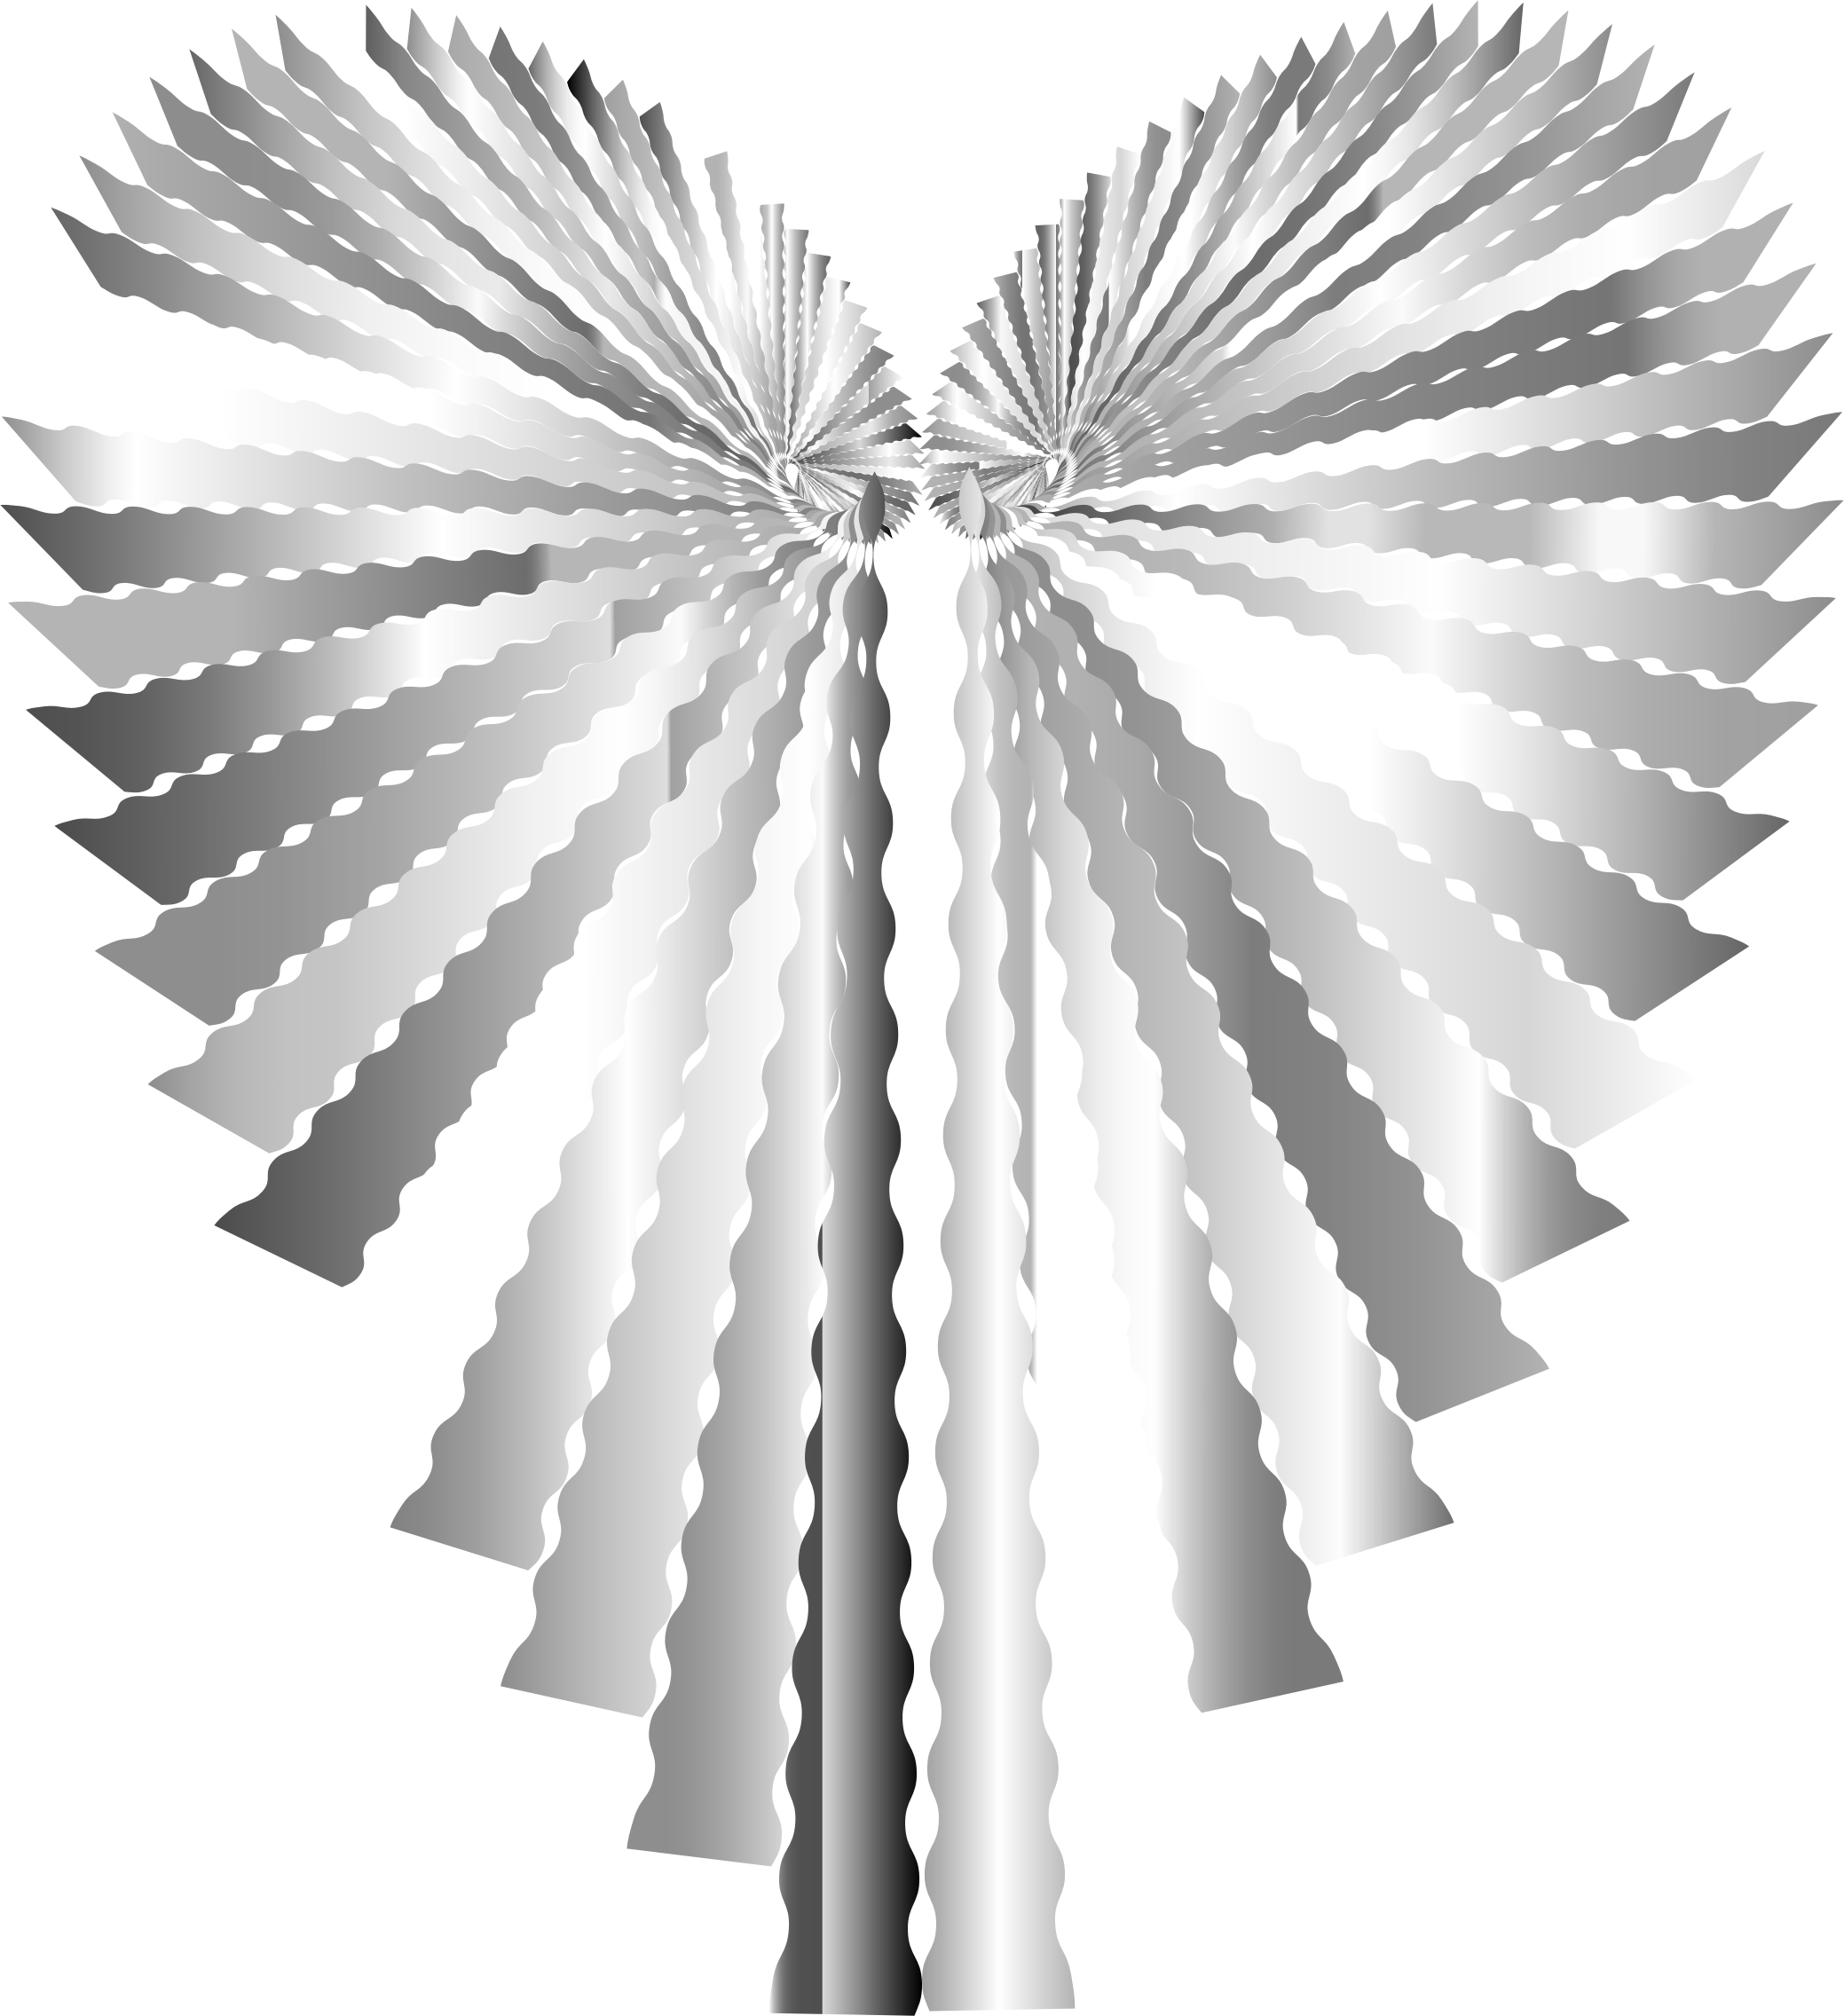 White heart clipart no background graphic library Clipart - Prismatic Abstract Heart 3 No Background graphic library